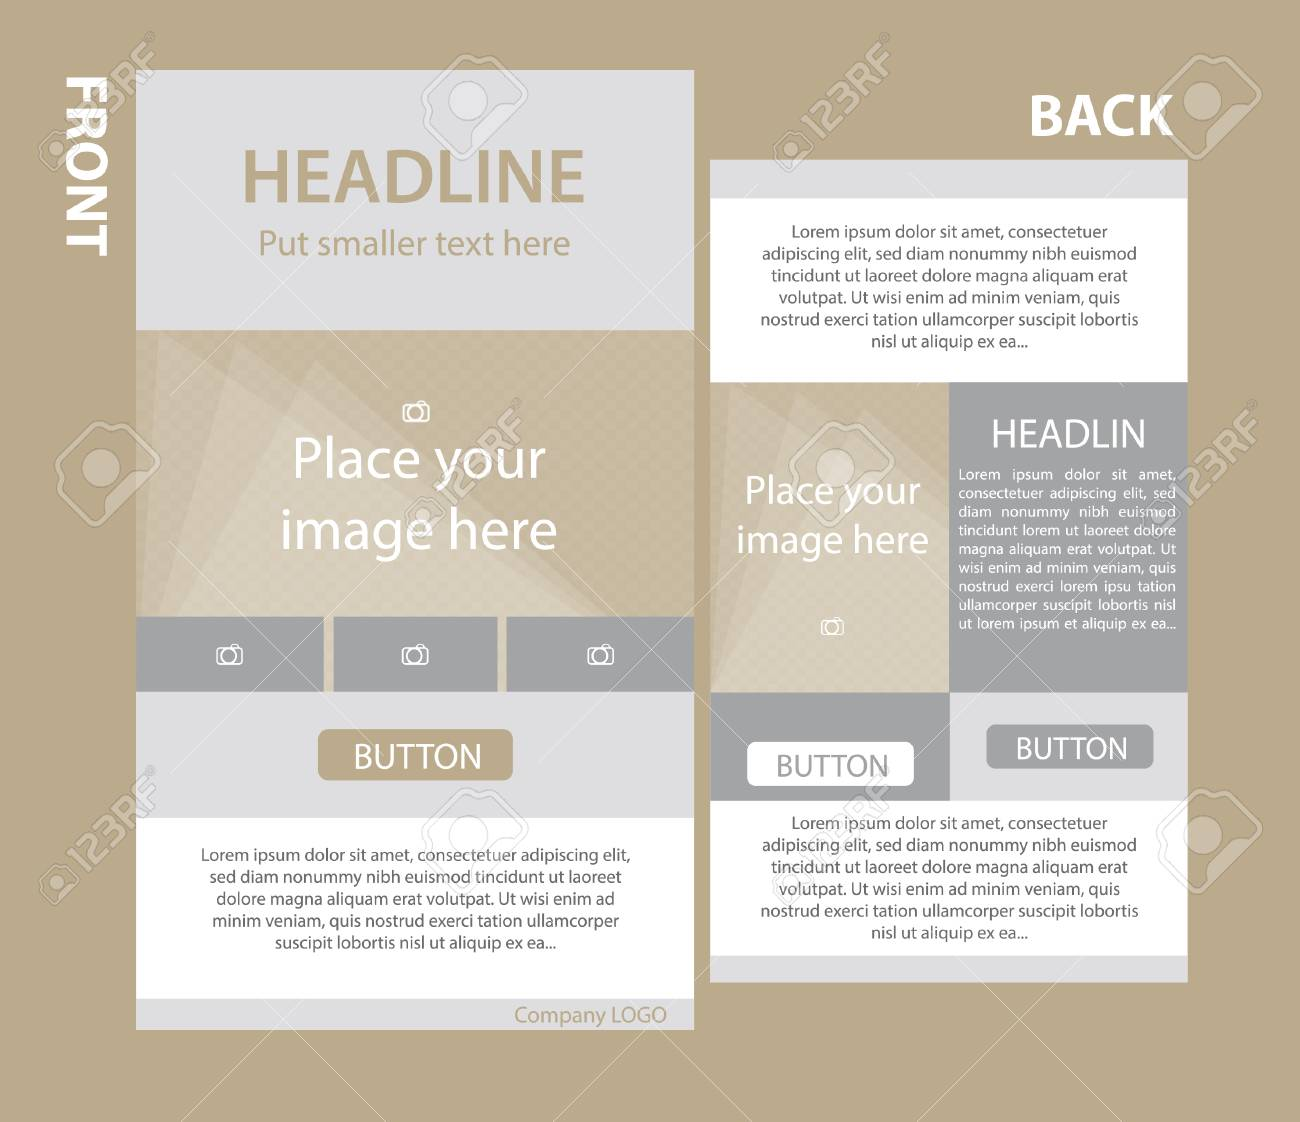 Newsletter Corporate Vector Template With Front And Back Layout Stock  Vector - 68045652